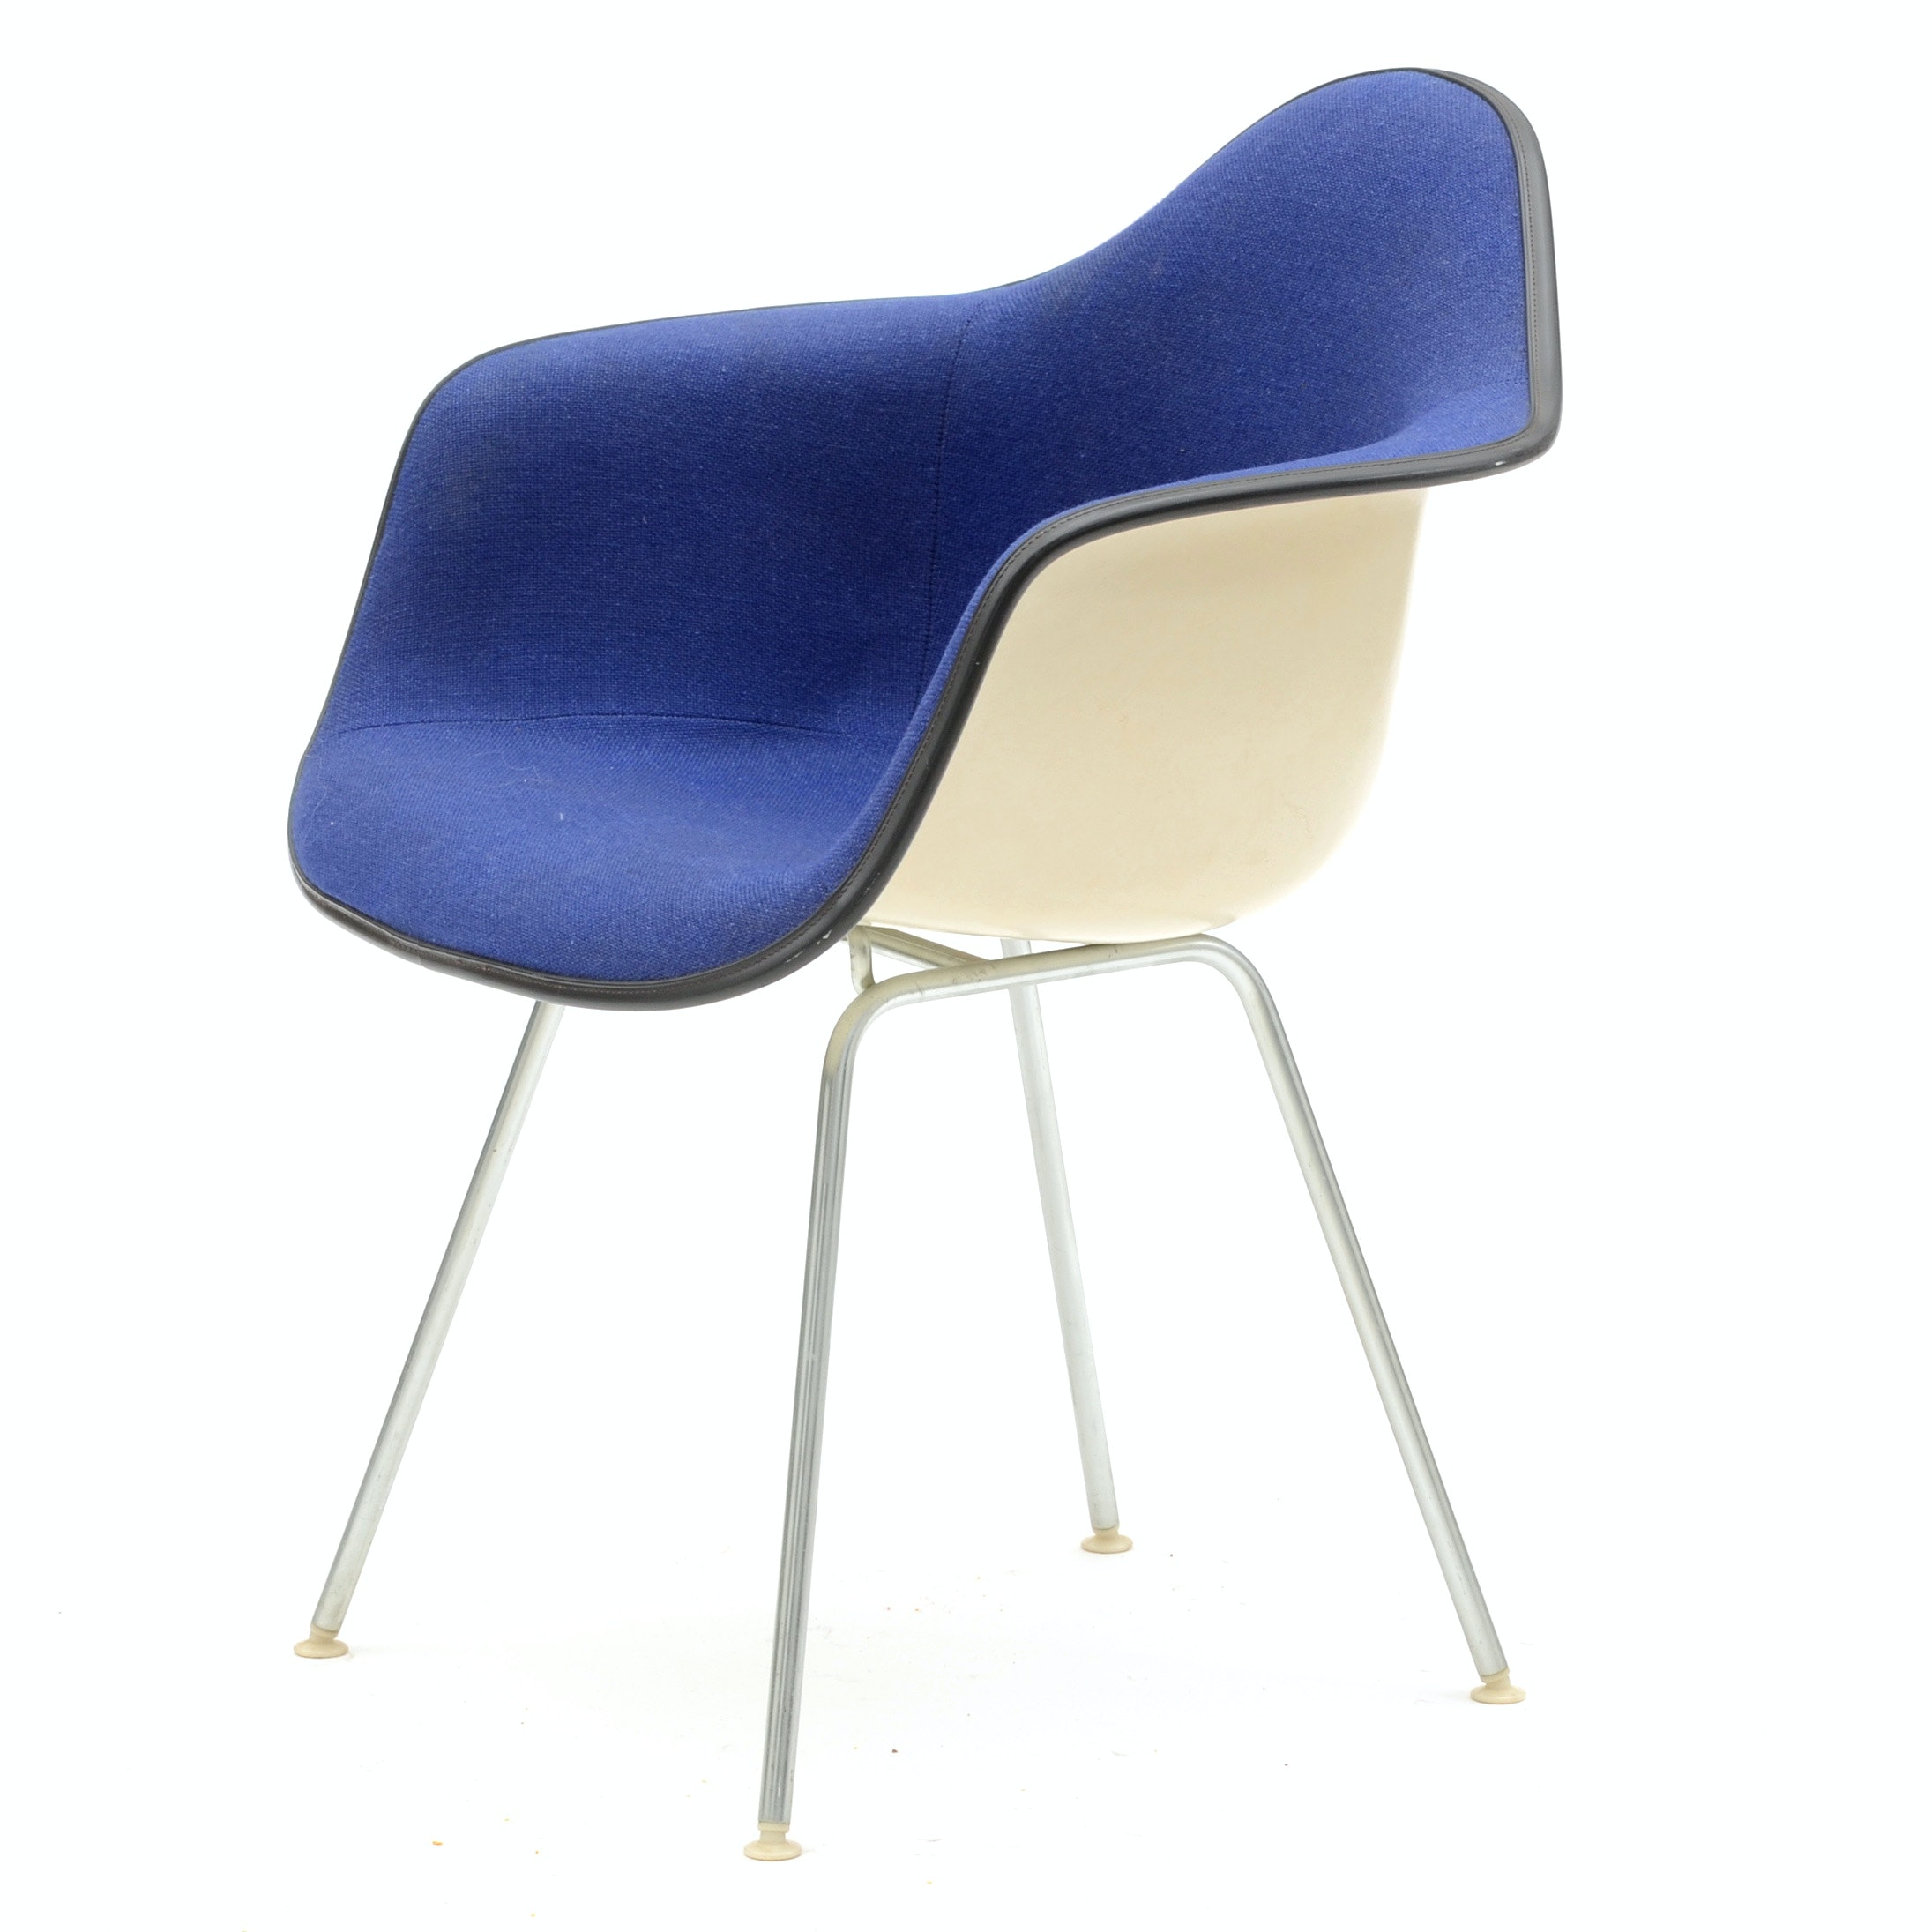 Vintage Eames Upholstered Shell Armchair By Herman Miller